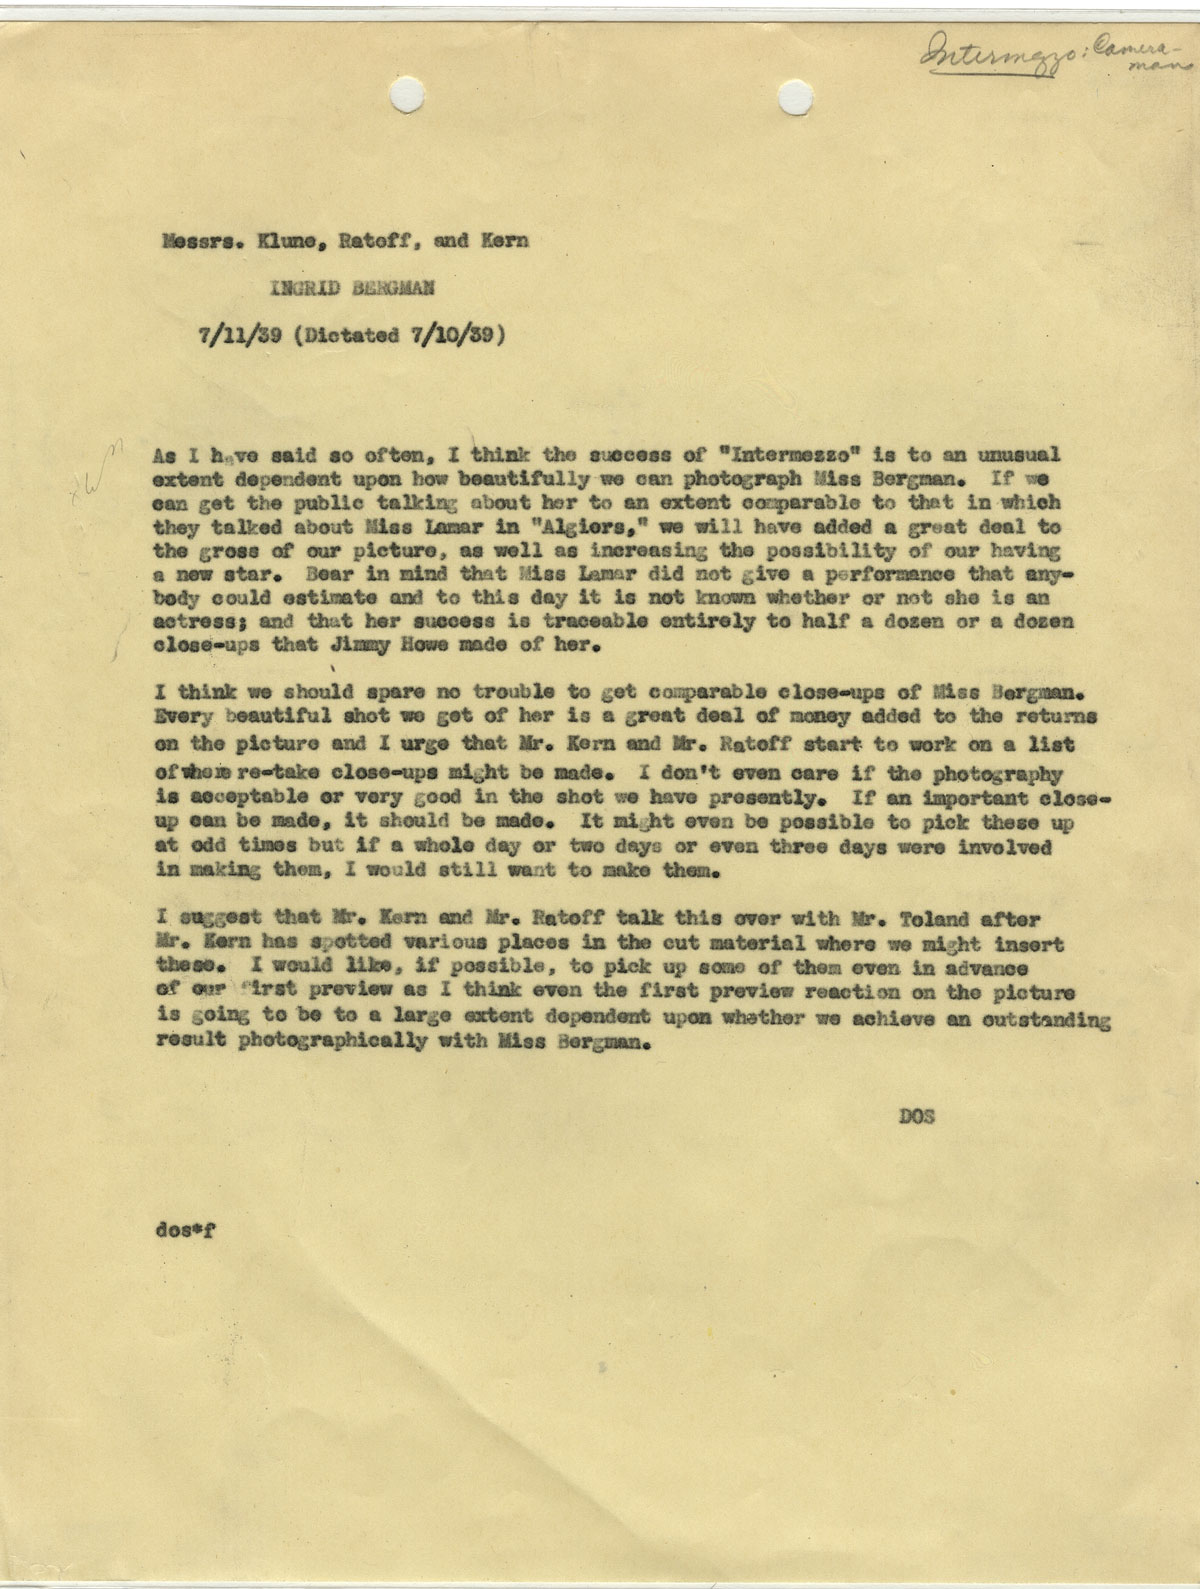 Memo from David O. Selznick about how close-ups of Ingrid Bergman translate into better financial returns at the box office. David O. Selznick collection.